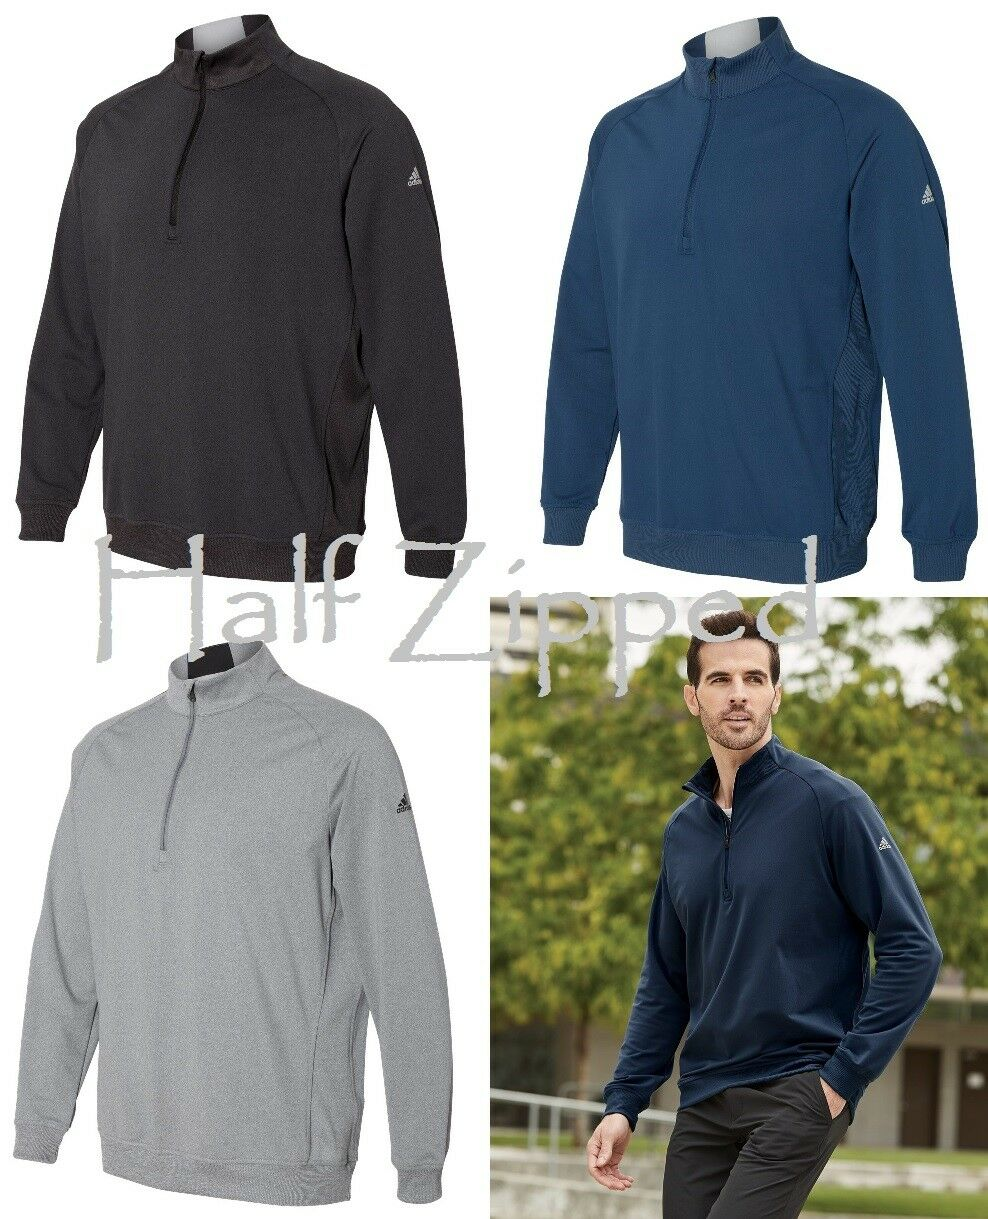 Adidas Golf Quarter-Zip Club Pullover Jacket A270 S-3XL Sweatshirt Jacket Pullover be4e68